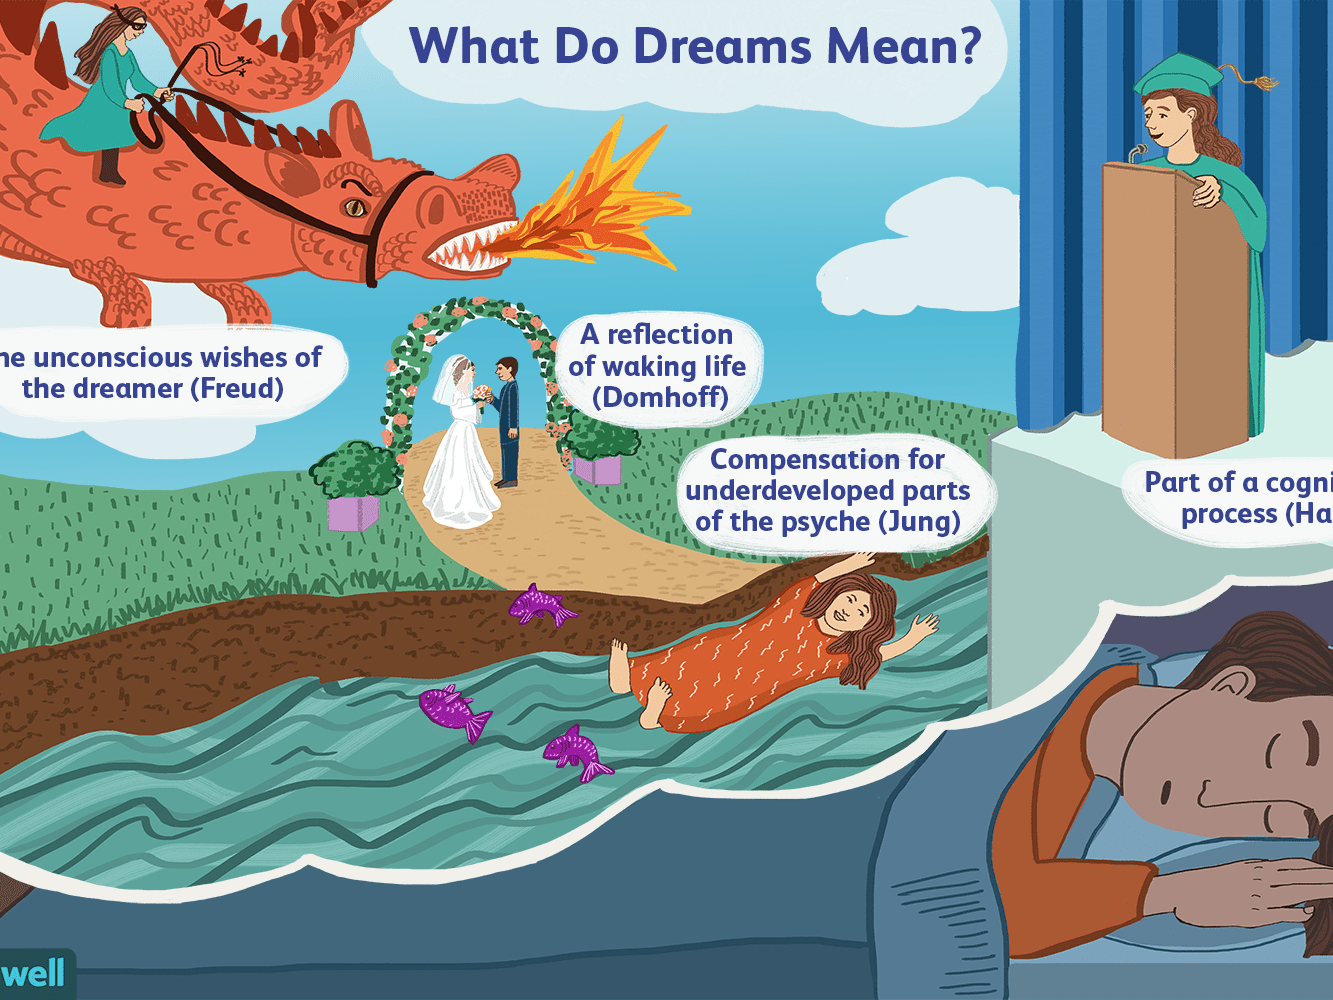 Methods of Dream Interpretation: What Do Dreams Mean?